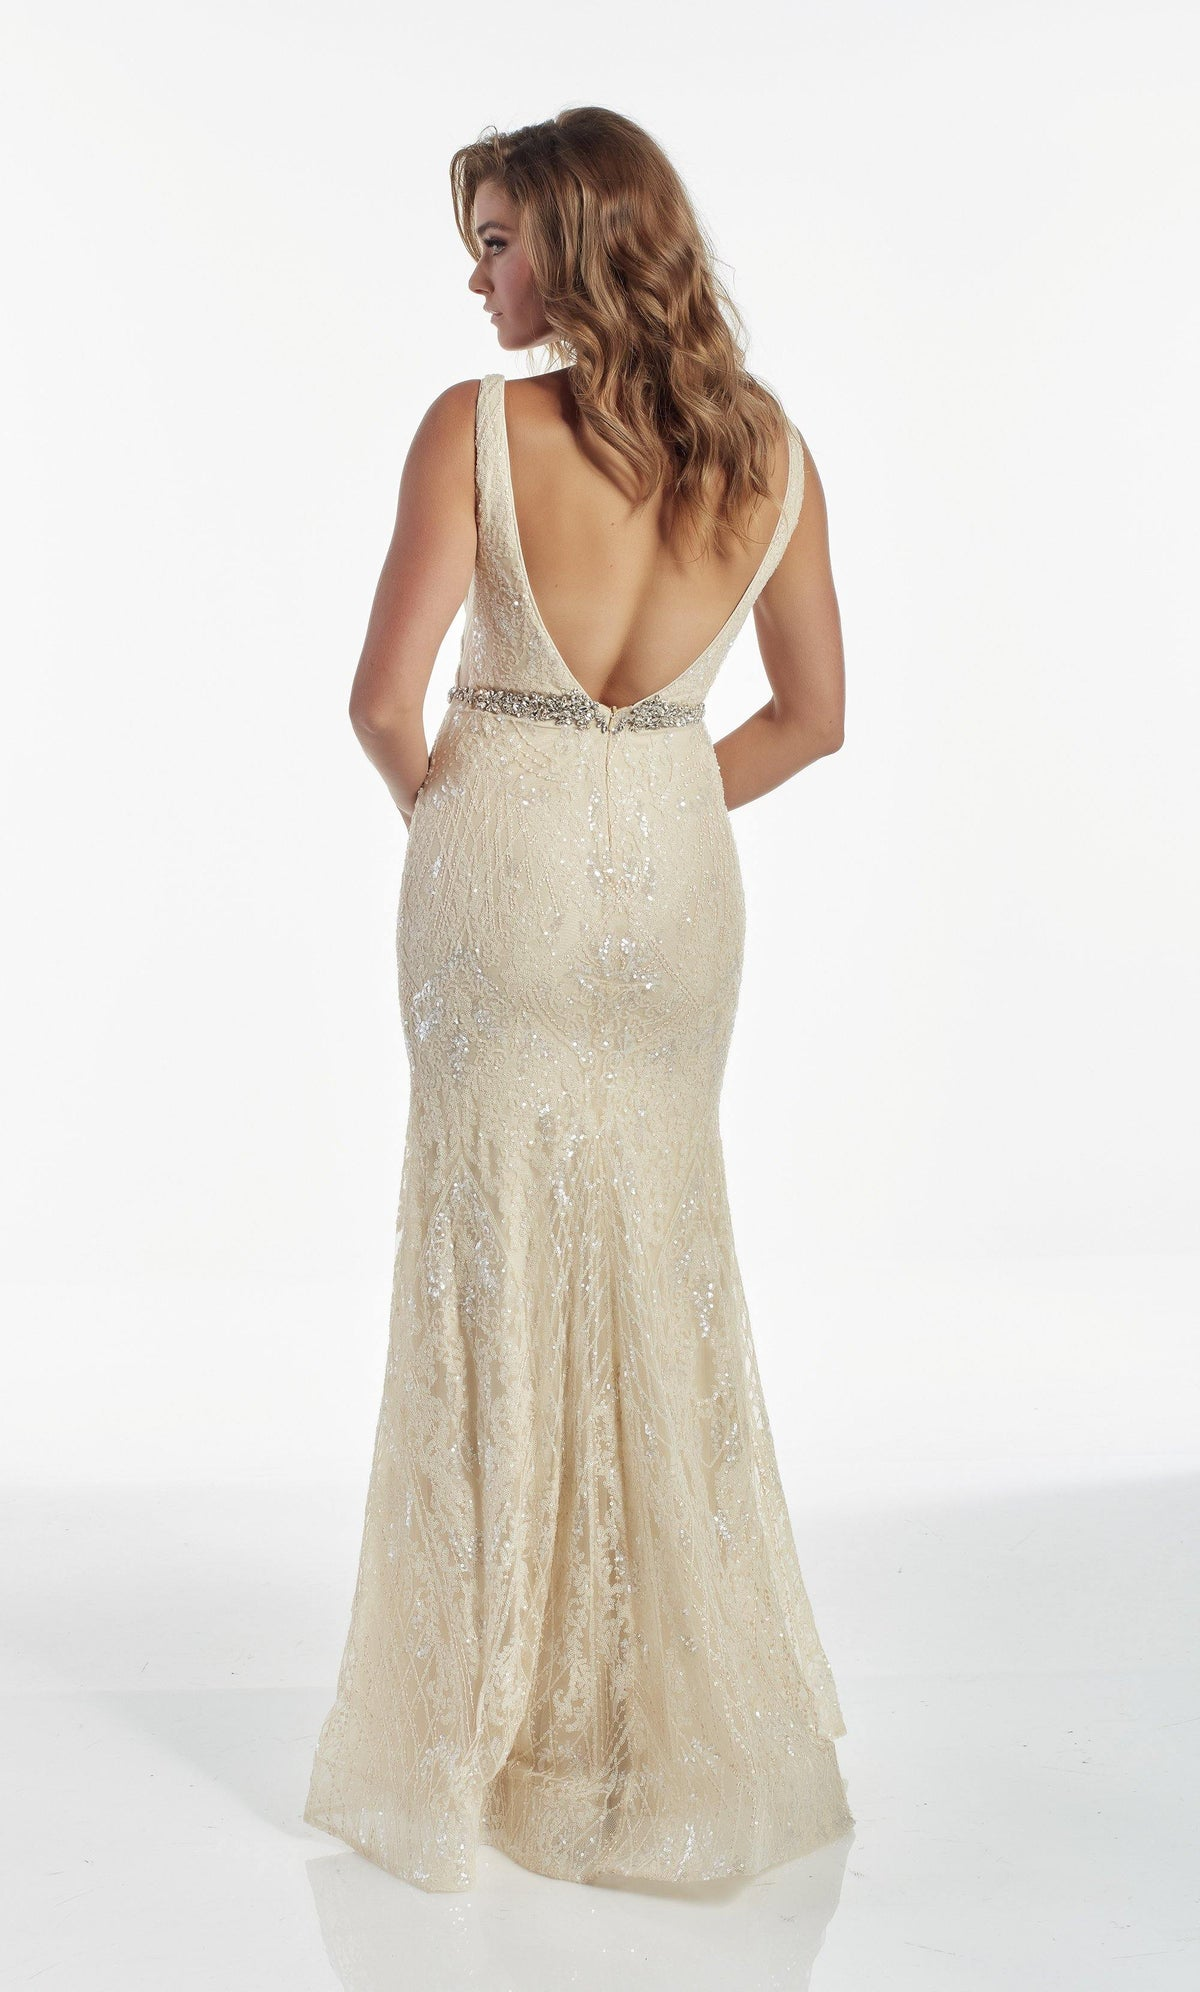 Fully sequin embellished Creme colored evening gown with a V shaped back and a jewel accents at the natural waist